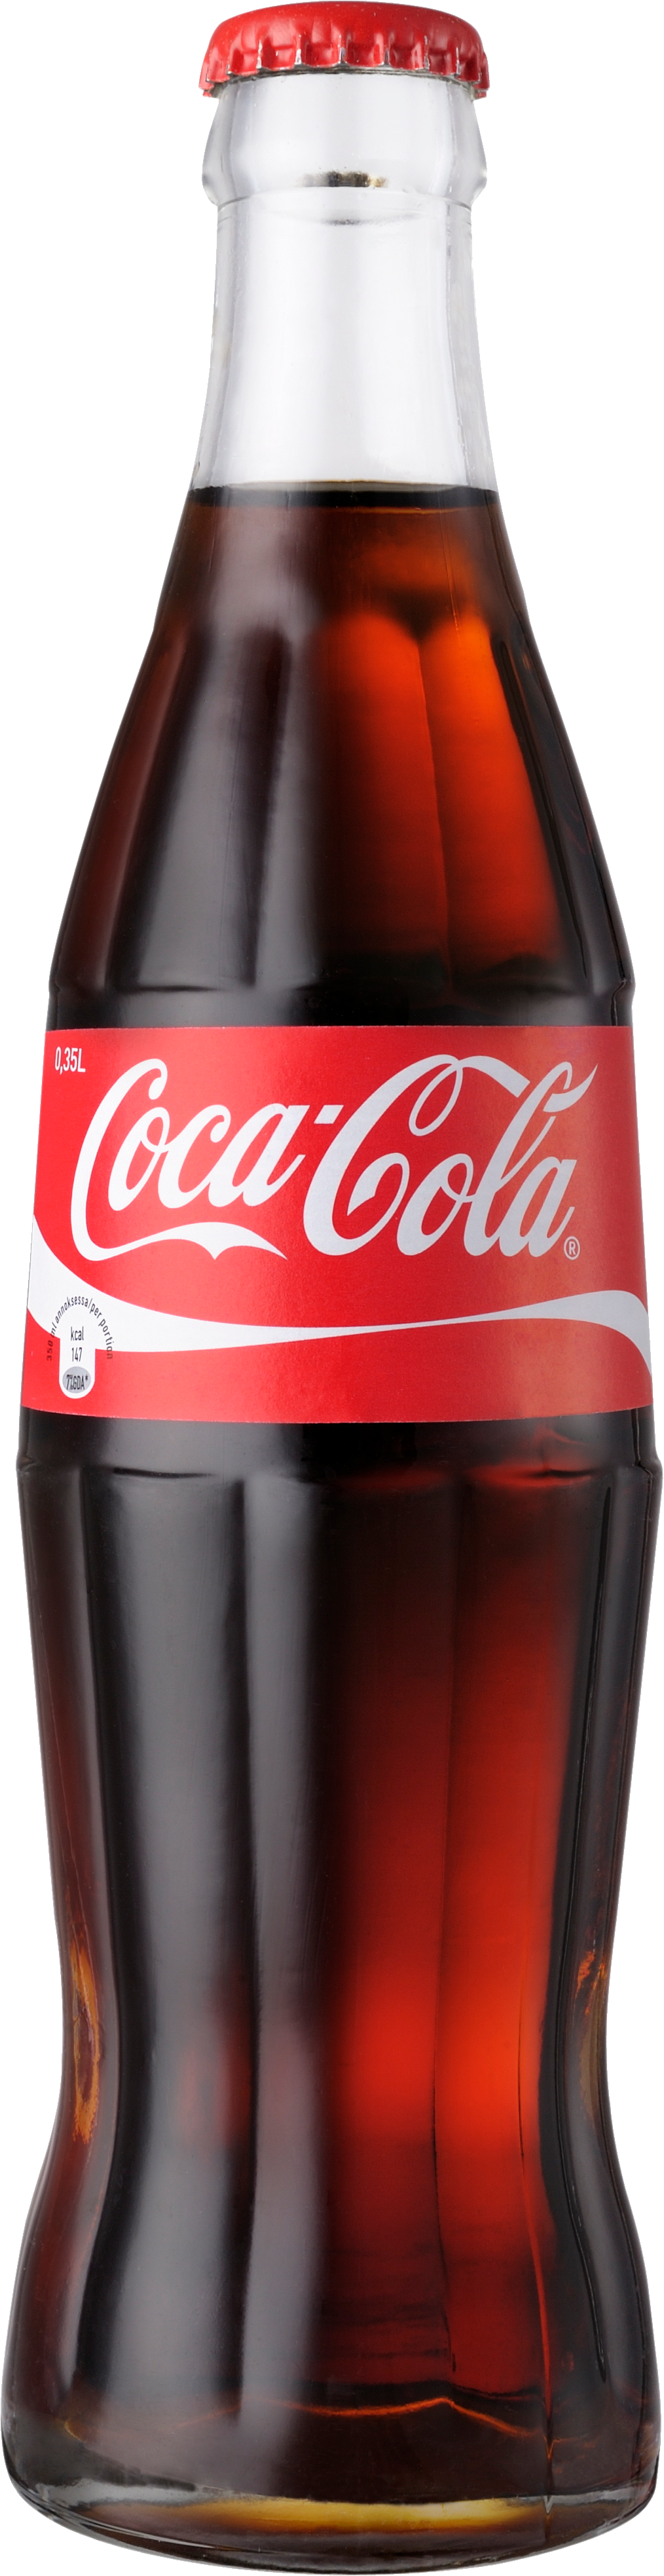 coco cola png